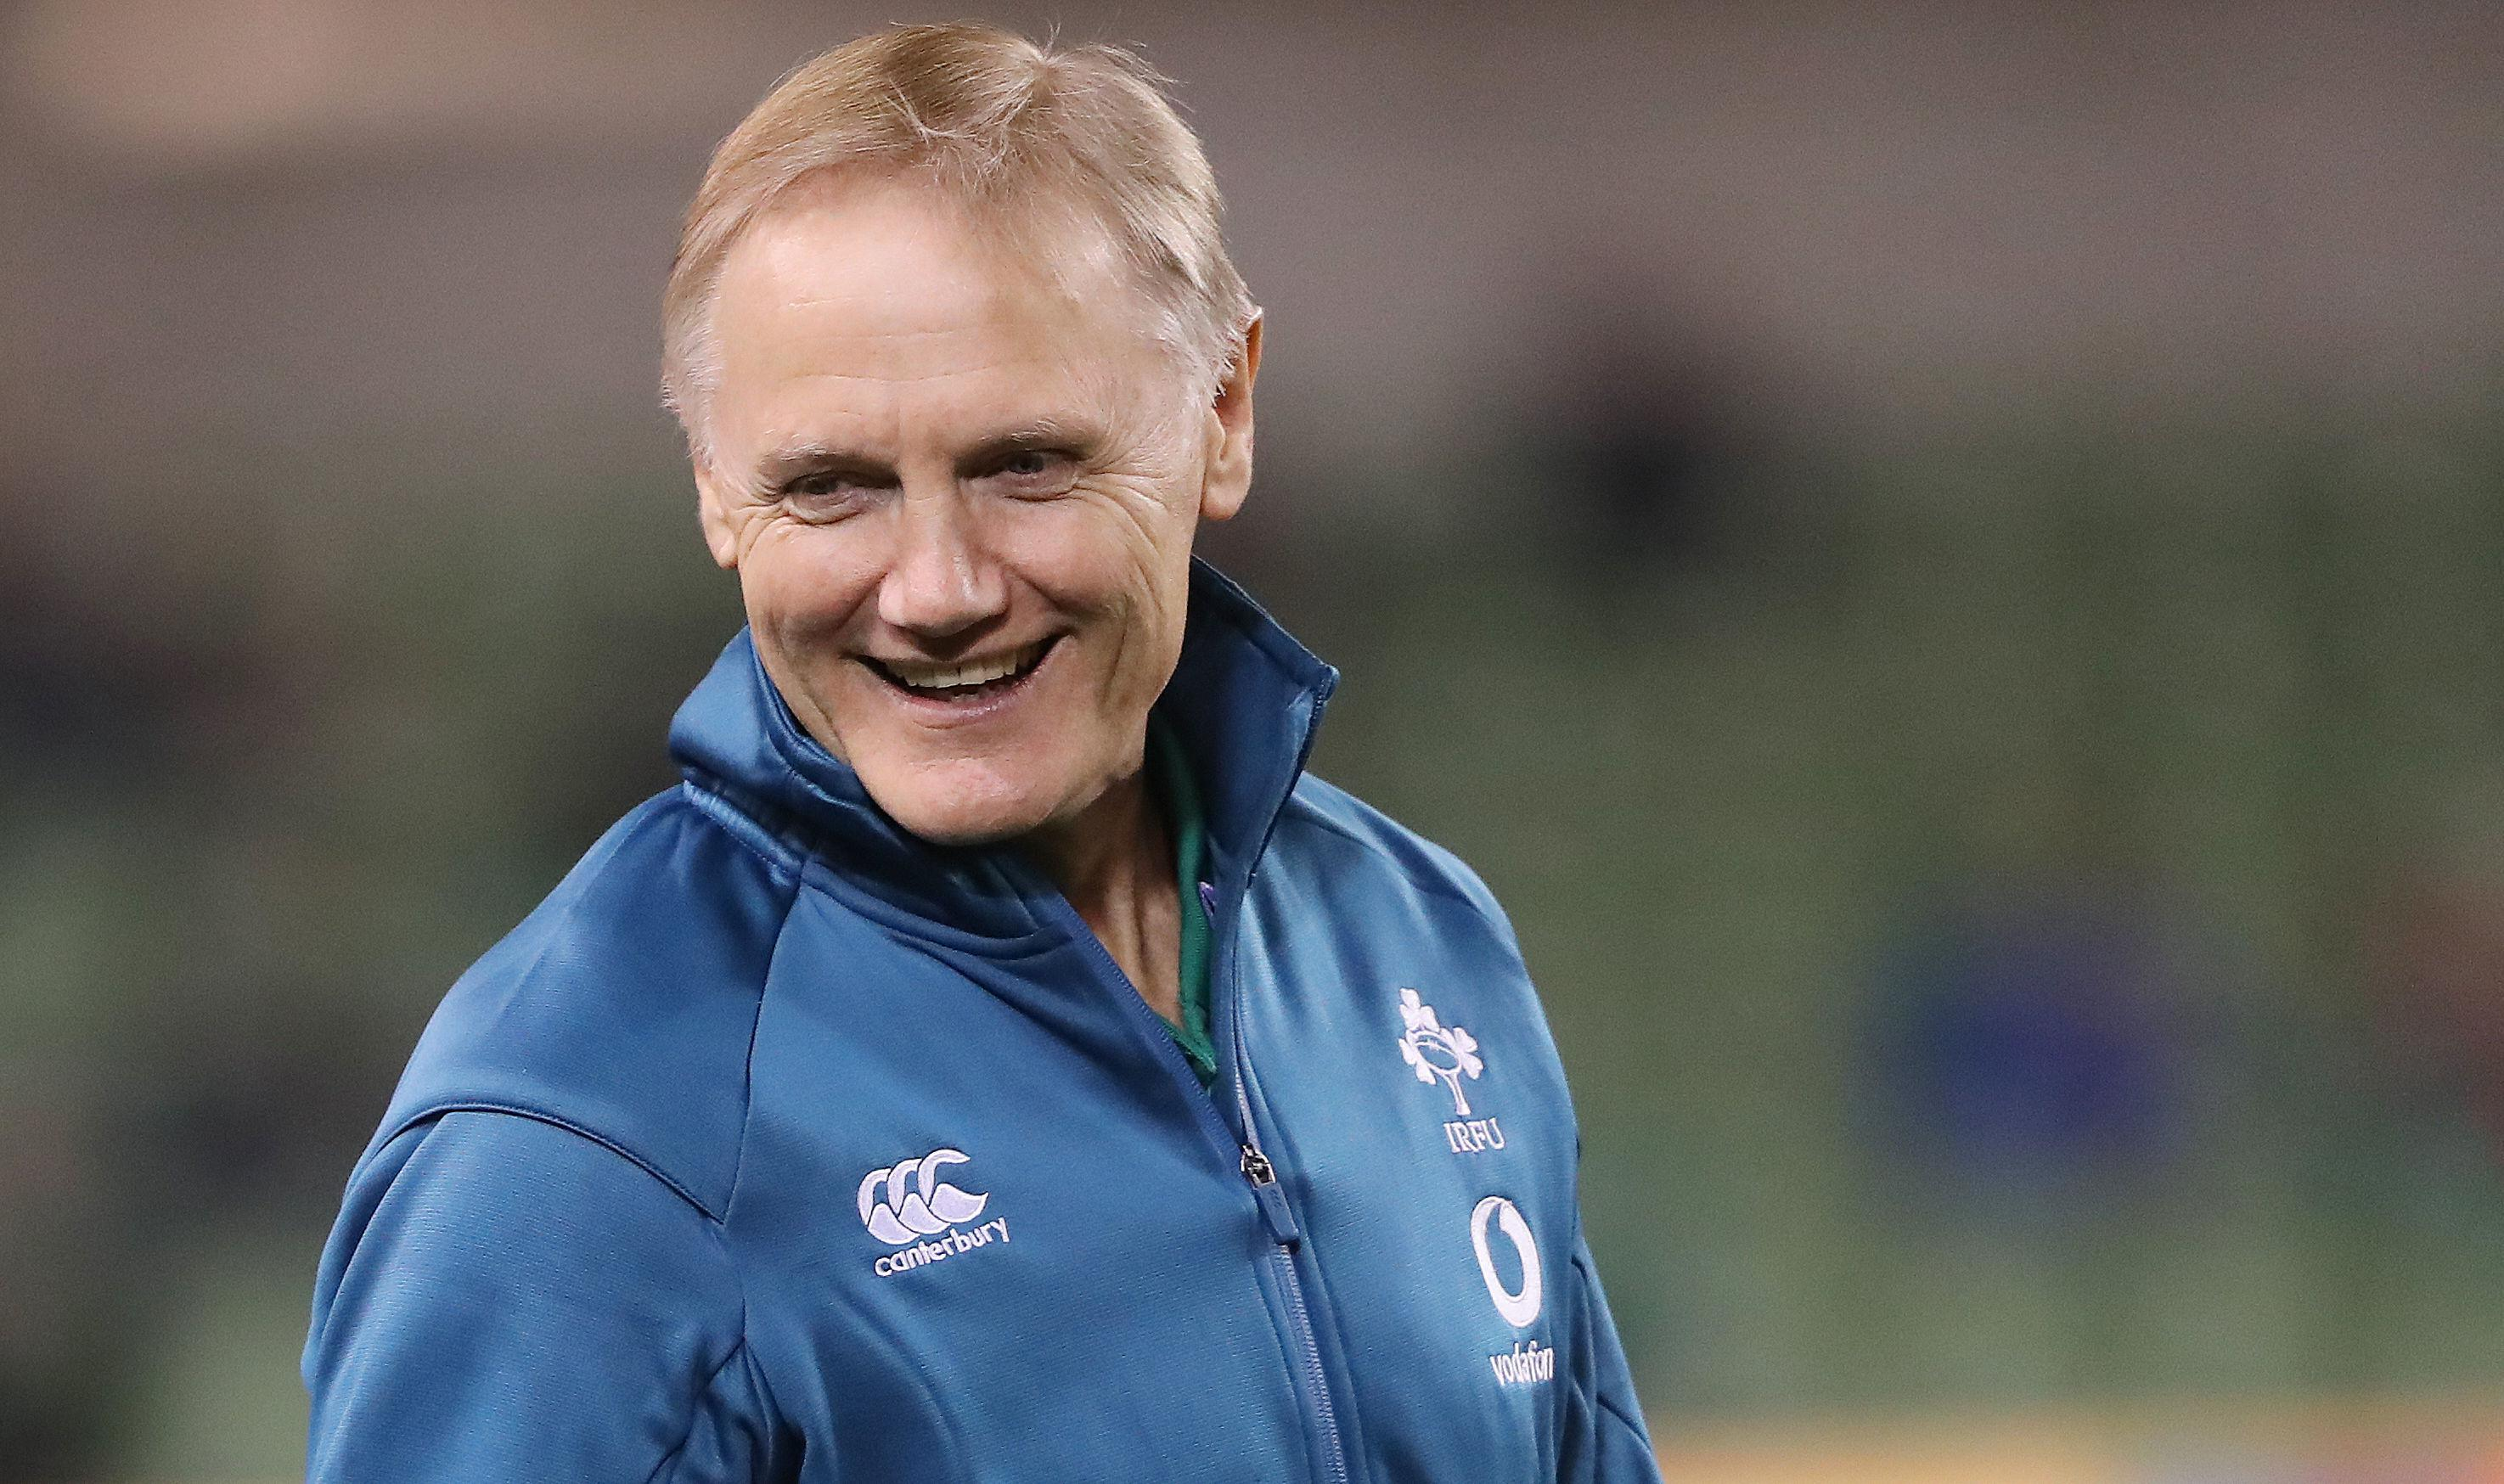 Joe Schmidt will leave Ireland after next year's World Cup - and he will be fondly remembered for some real success stories